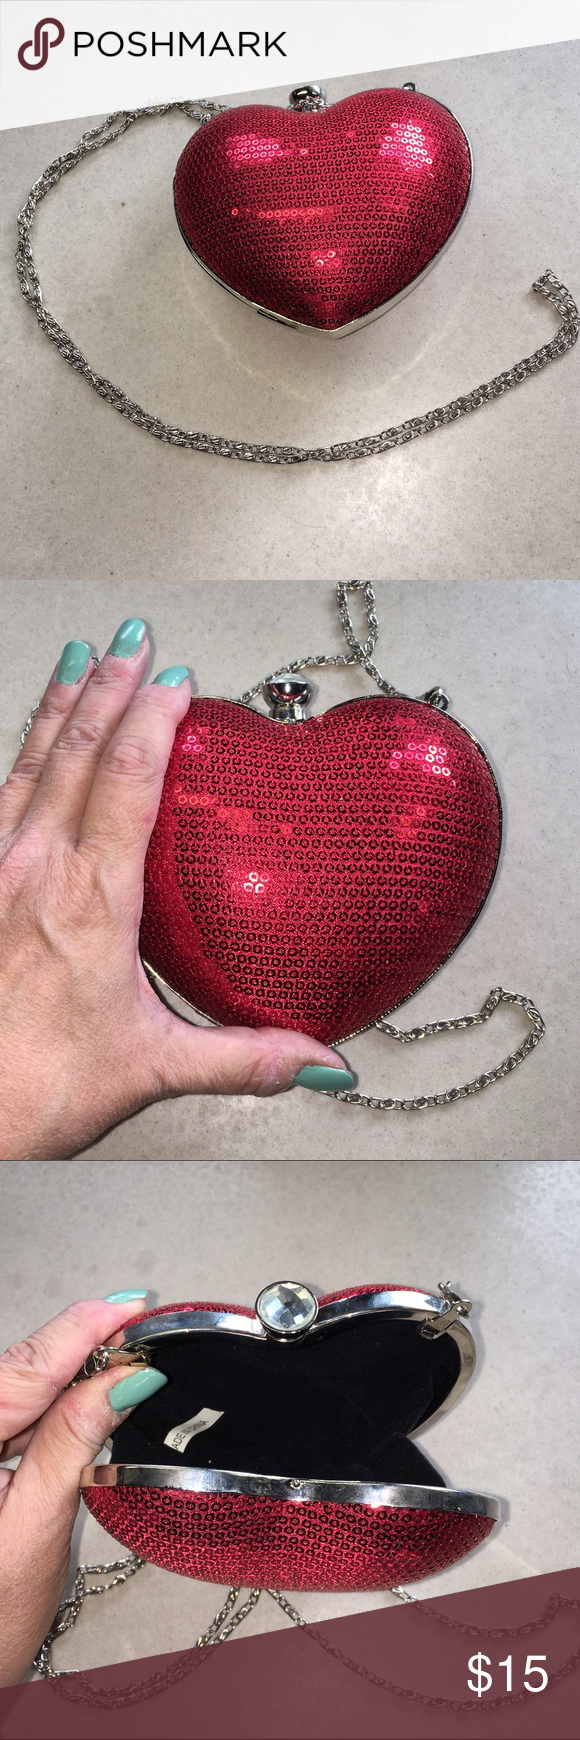 """NEW Heart purse Gorgeous heart shaped clutch purse. Covered in red sequins with faux diamond knob closure at top. 20"""" long silver chain can be tucked inside purse to carry as hand clutch. BRAND NEW NEVER USED, purchased for a party then never wore it. Black fabric interior. 5-1/2"""" across X 4-1/2"""" high. Silvertone accents. boutique Bags Clutches & Wristlets"""